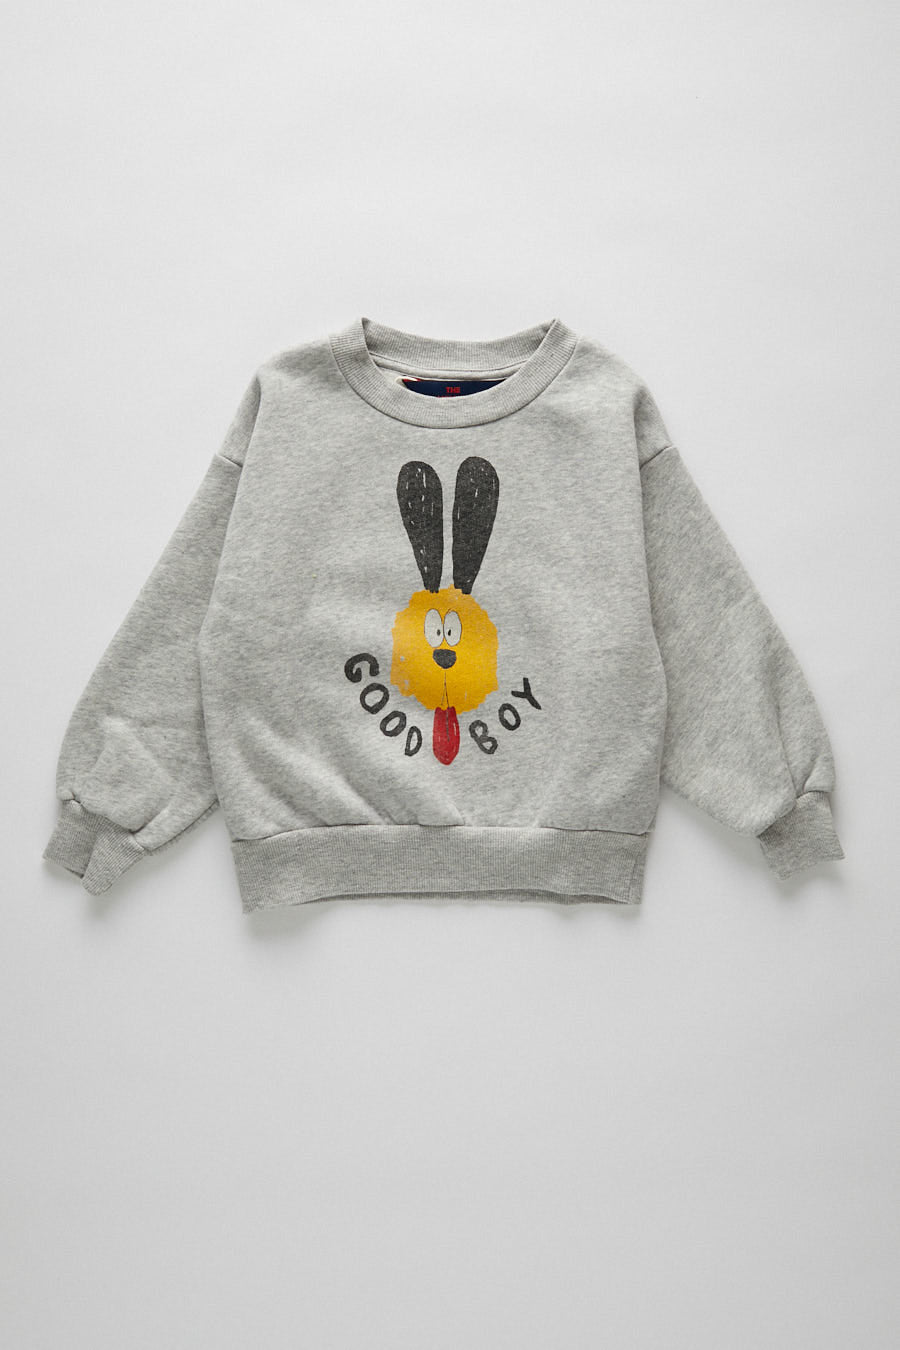 bear kids sweatshirt - good boy